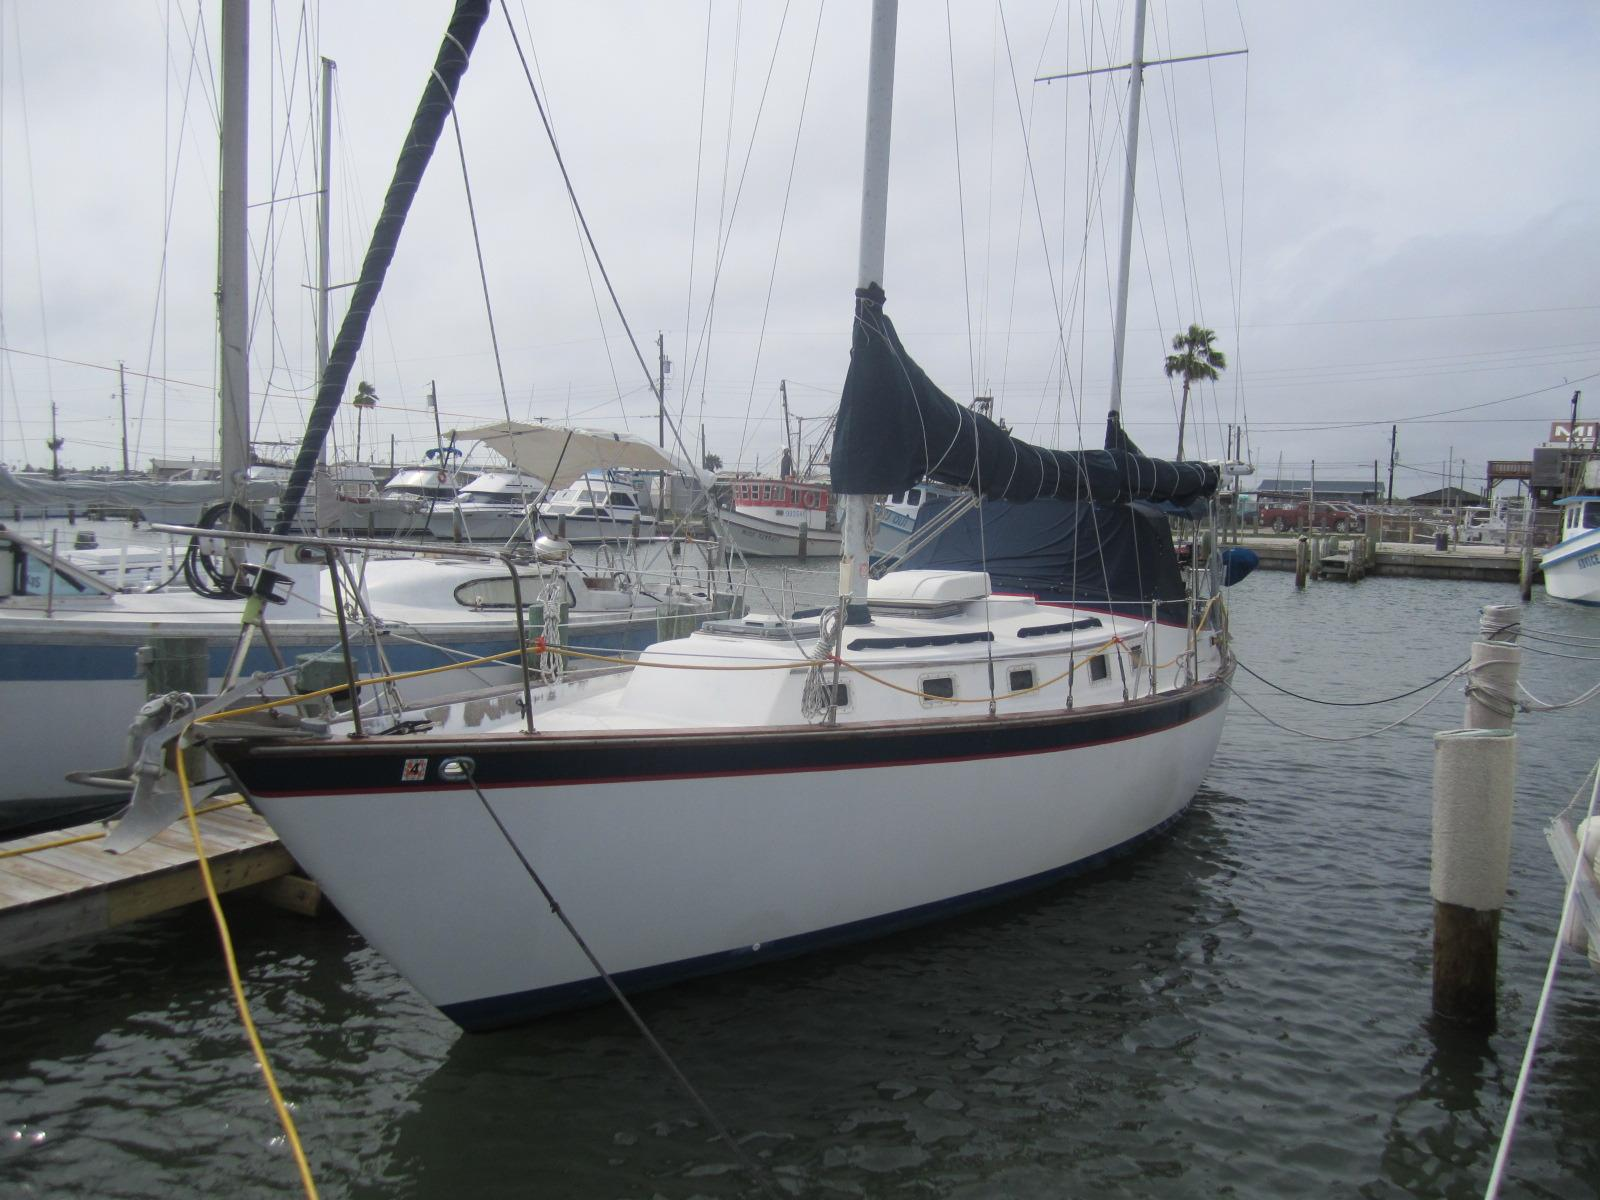 Aransas Pass (TX) United States  City new picture : 1981 Endeavour Ketch Vela Barca in vendita www.yachtworld.it